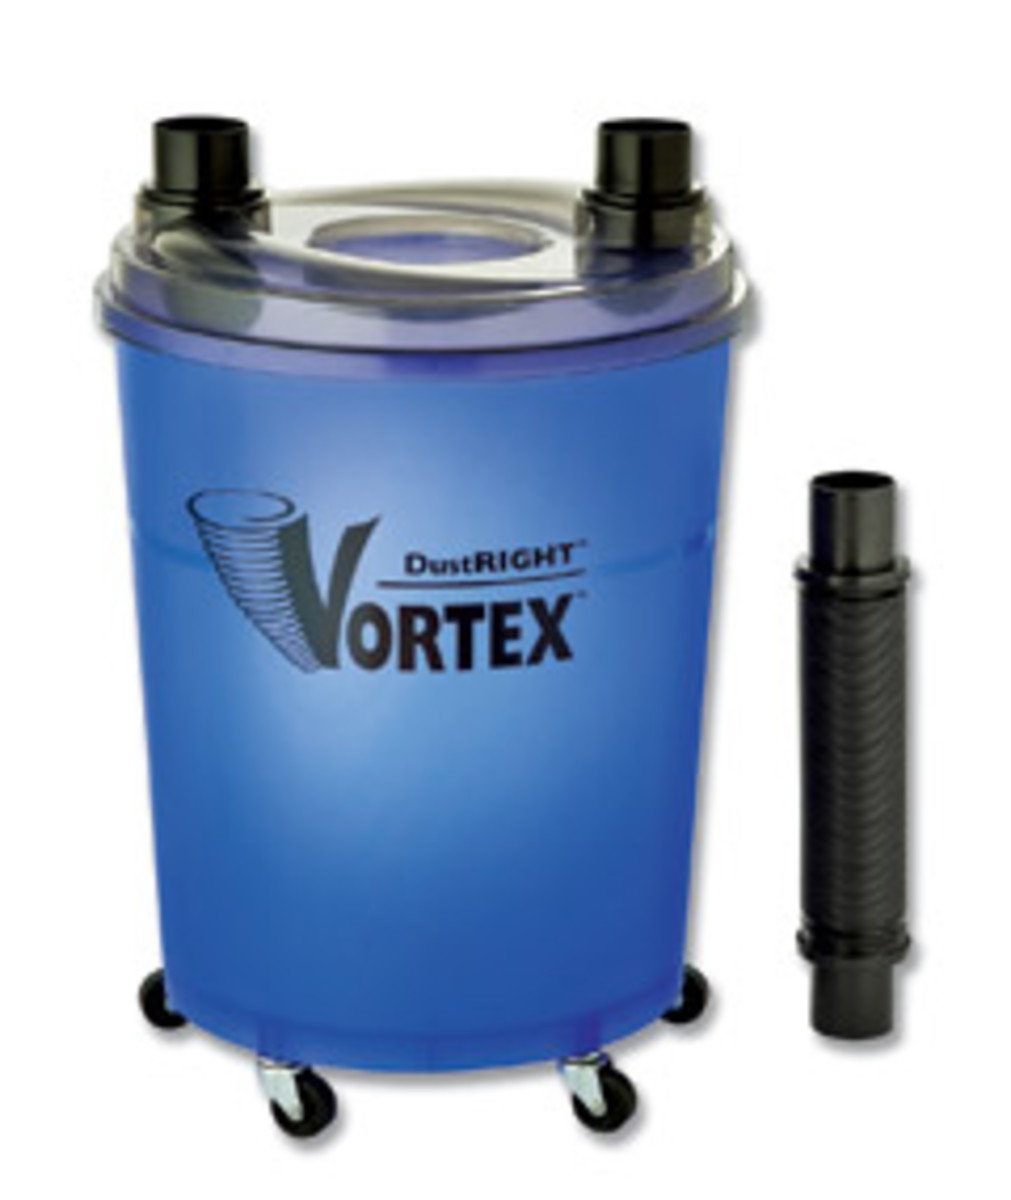 The DustRight Vortex is a dust-collection canister unit that uses suction power from a shop vacuum.